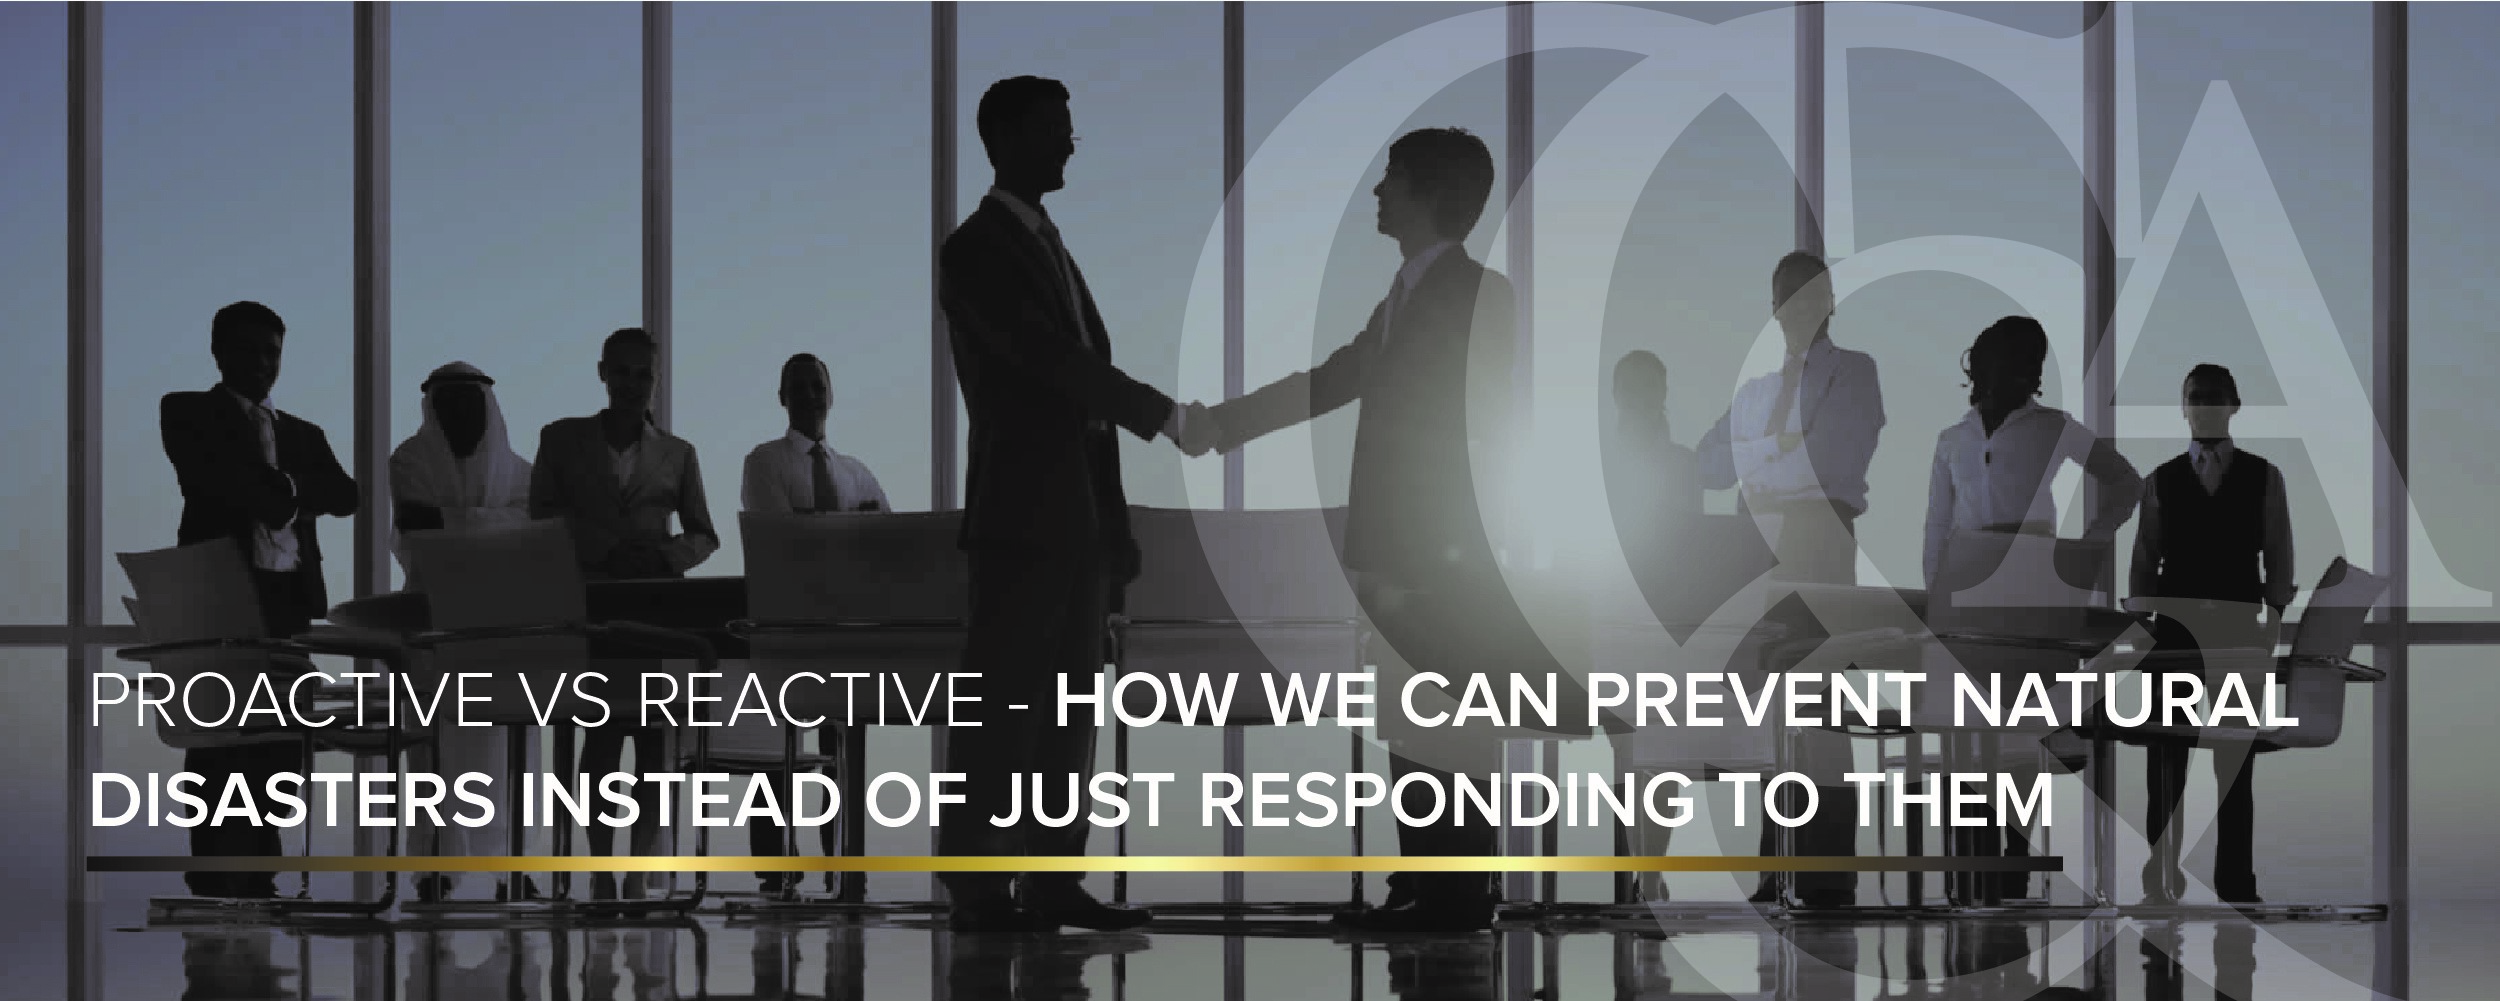 Proactive vs Reactive – How Can We Prevent Natural Disasters Instead of Just Responding To Them?